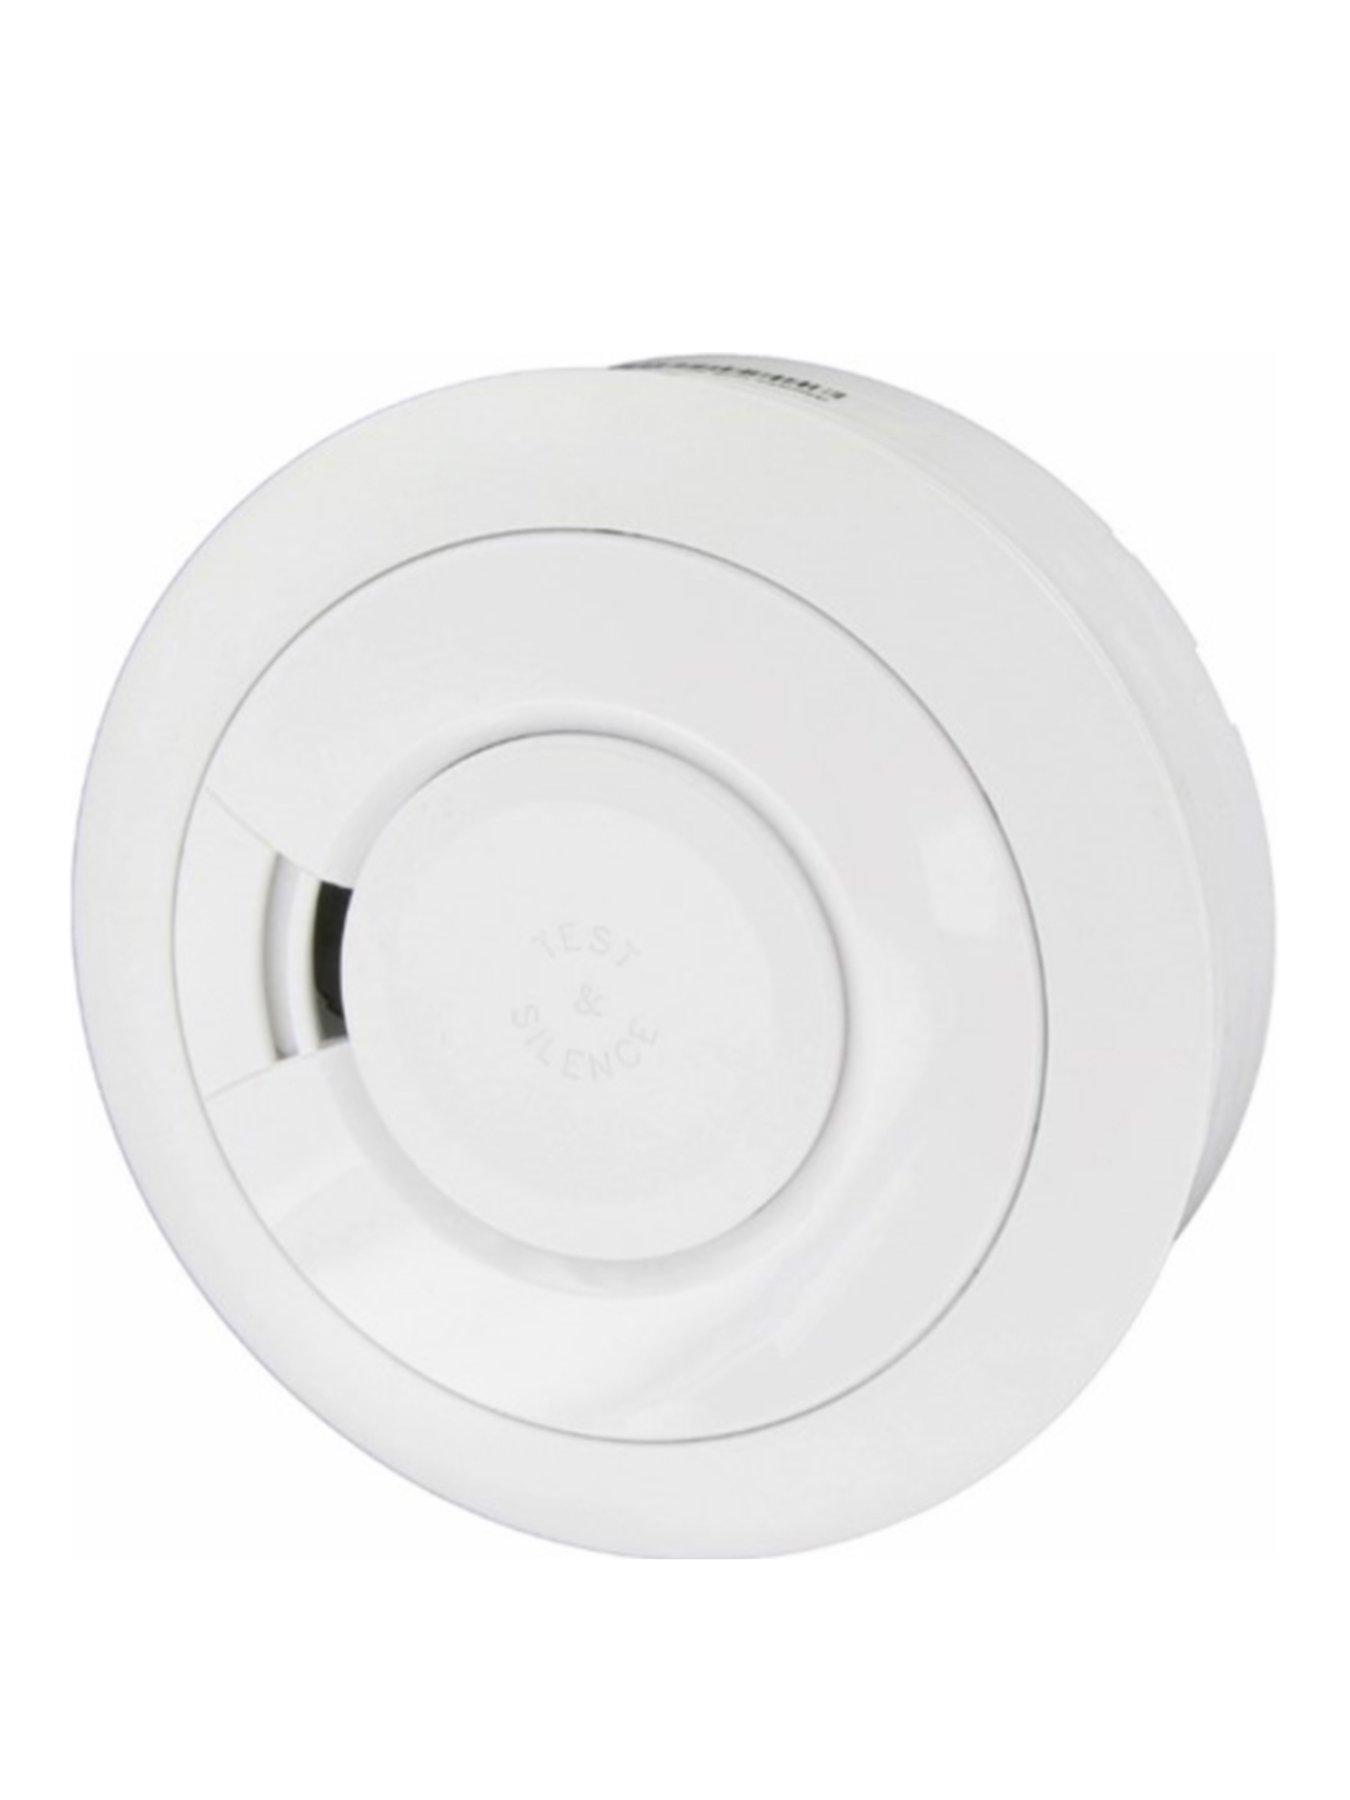 Compare prices for Honeywell Smart Security Optical Smoke Detector